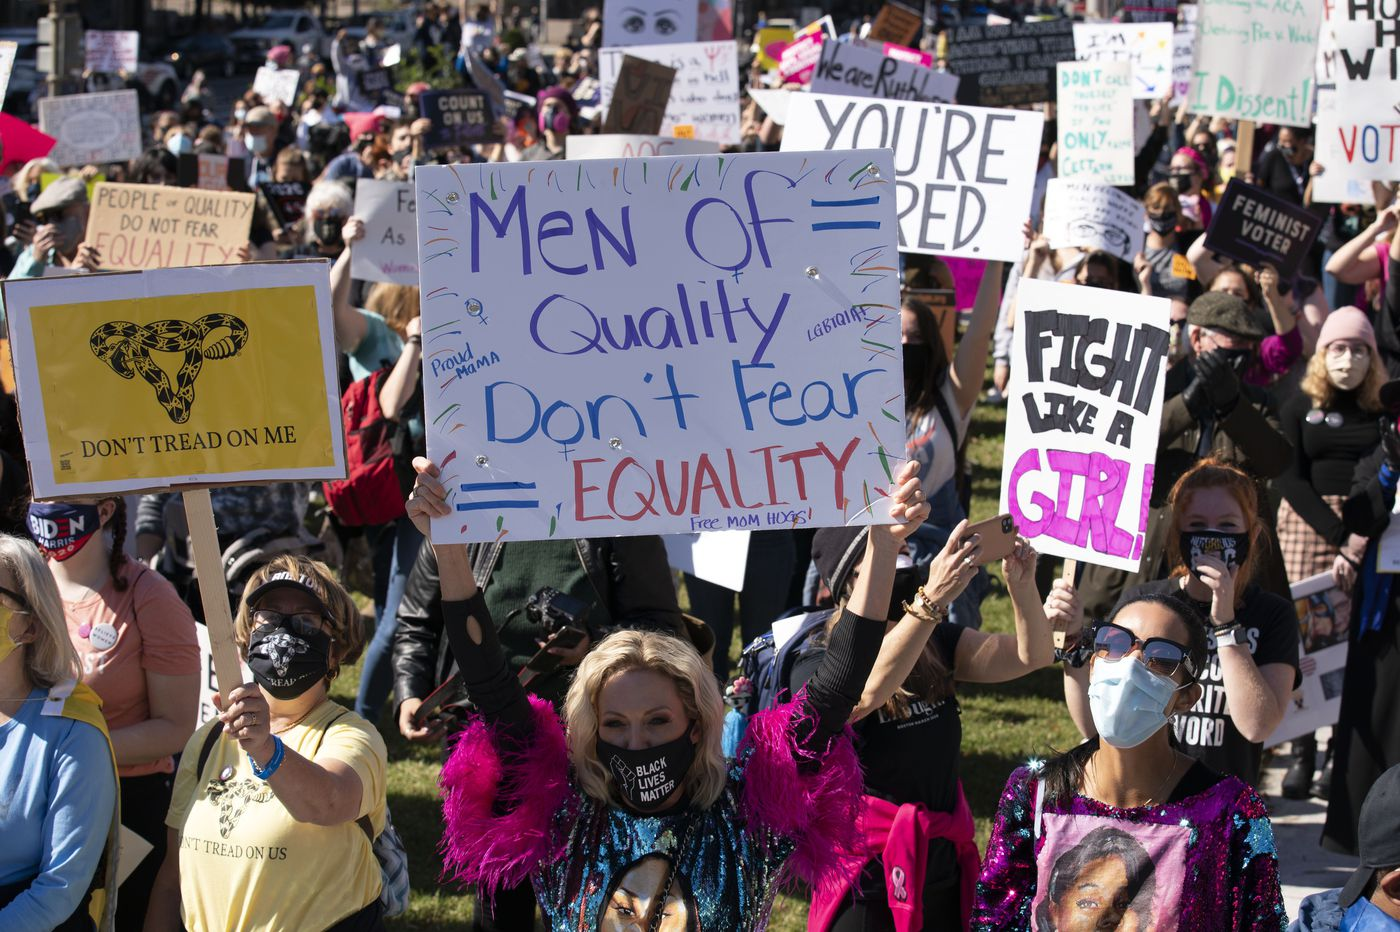 Women's March in D.C. draws thousands in protest of Supreme Court nominee, Trump